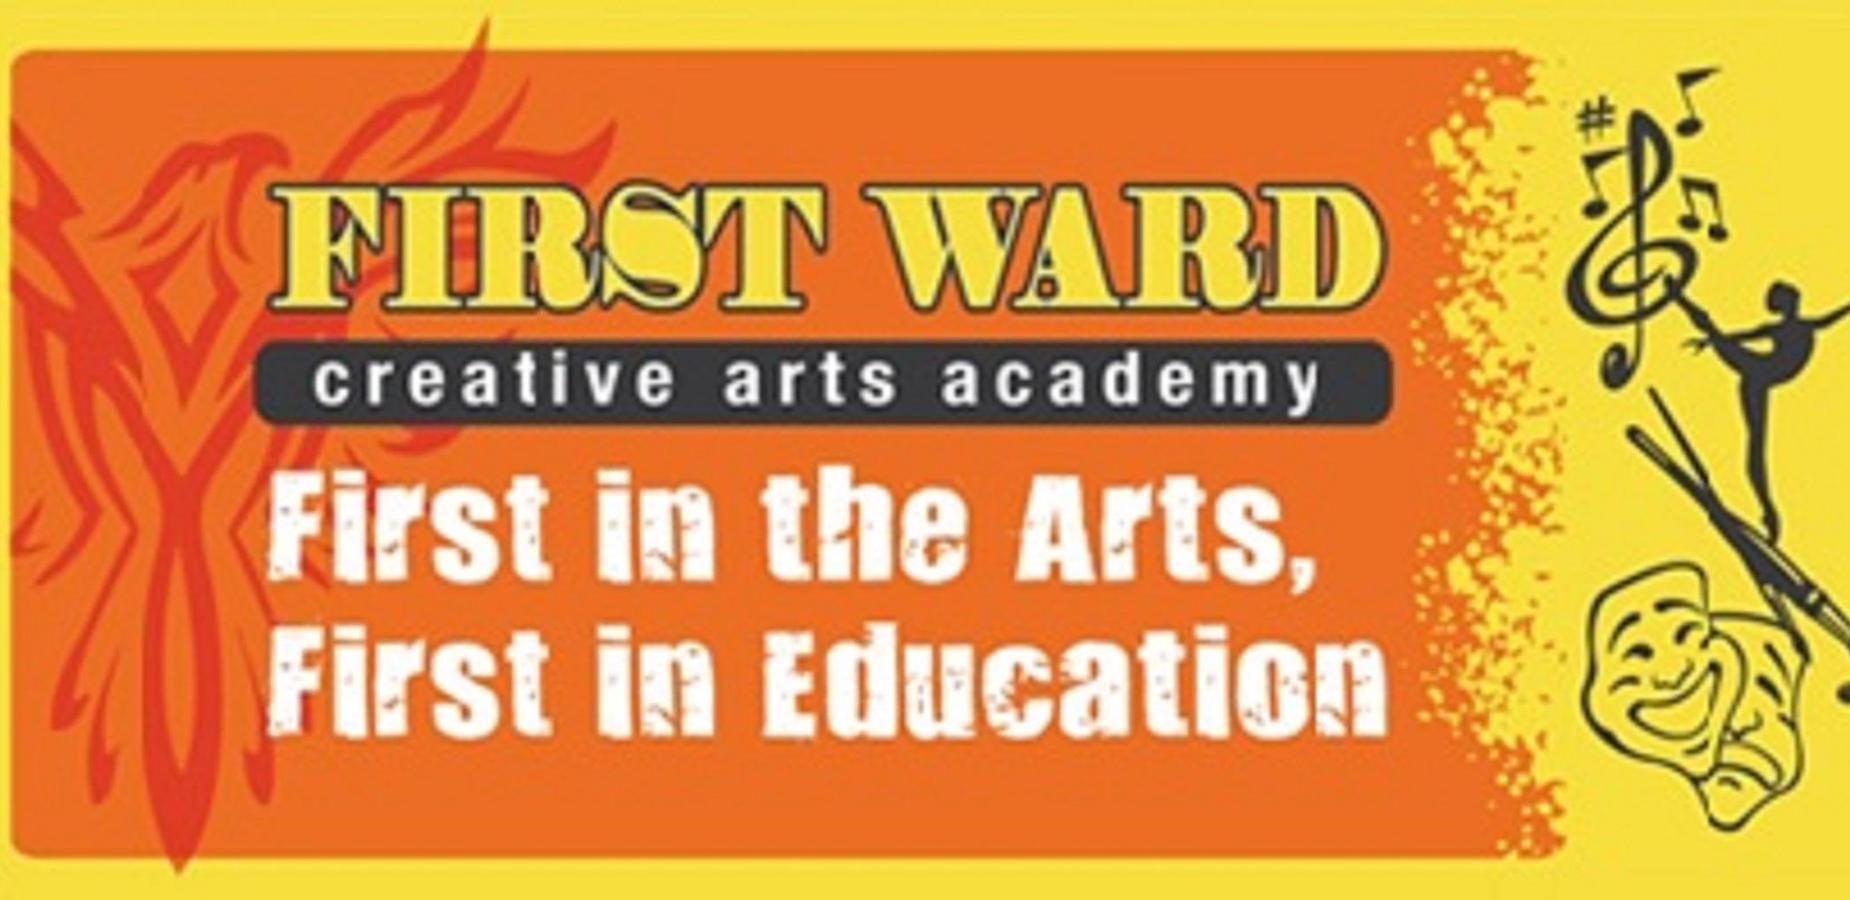 First Ward Creative Arts Academy Logo